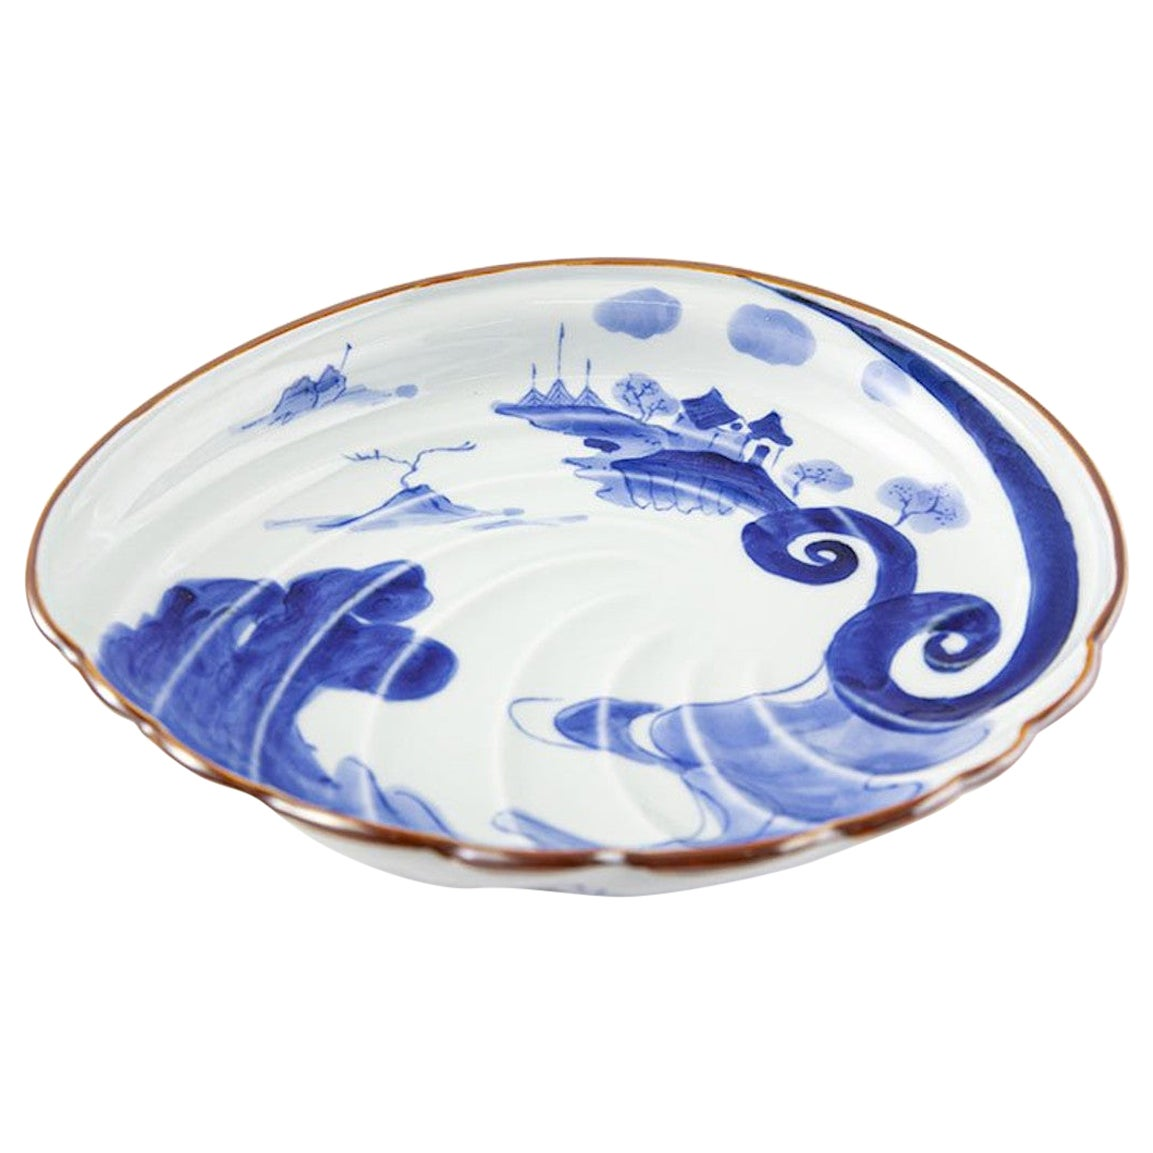 Japanese Contemporary Blue White Porcelain Charger by Renowned Kiln